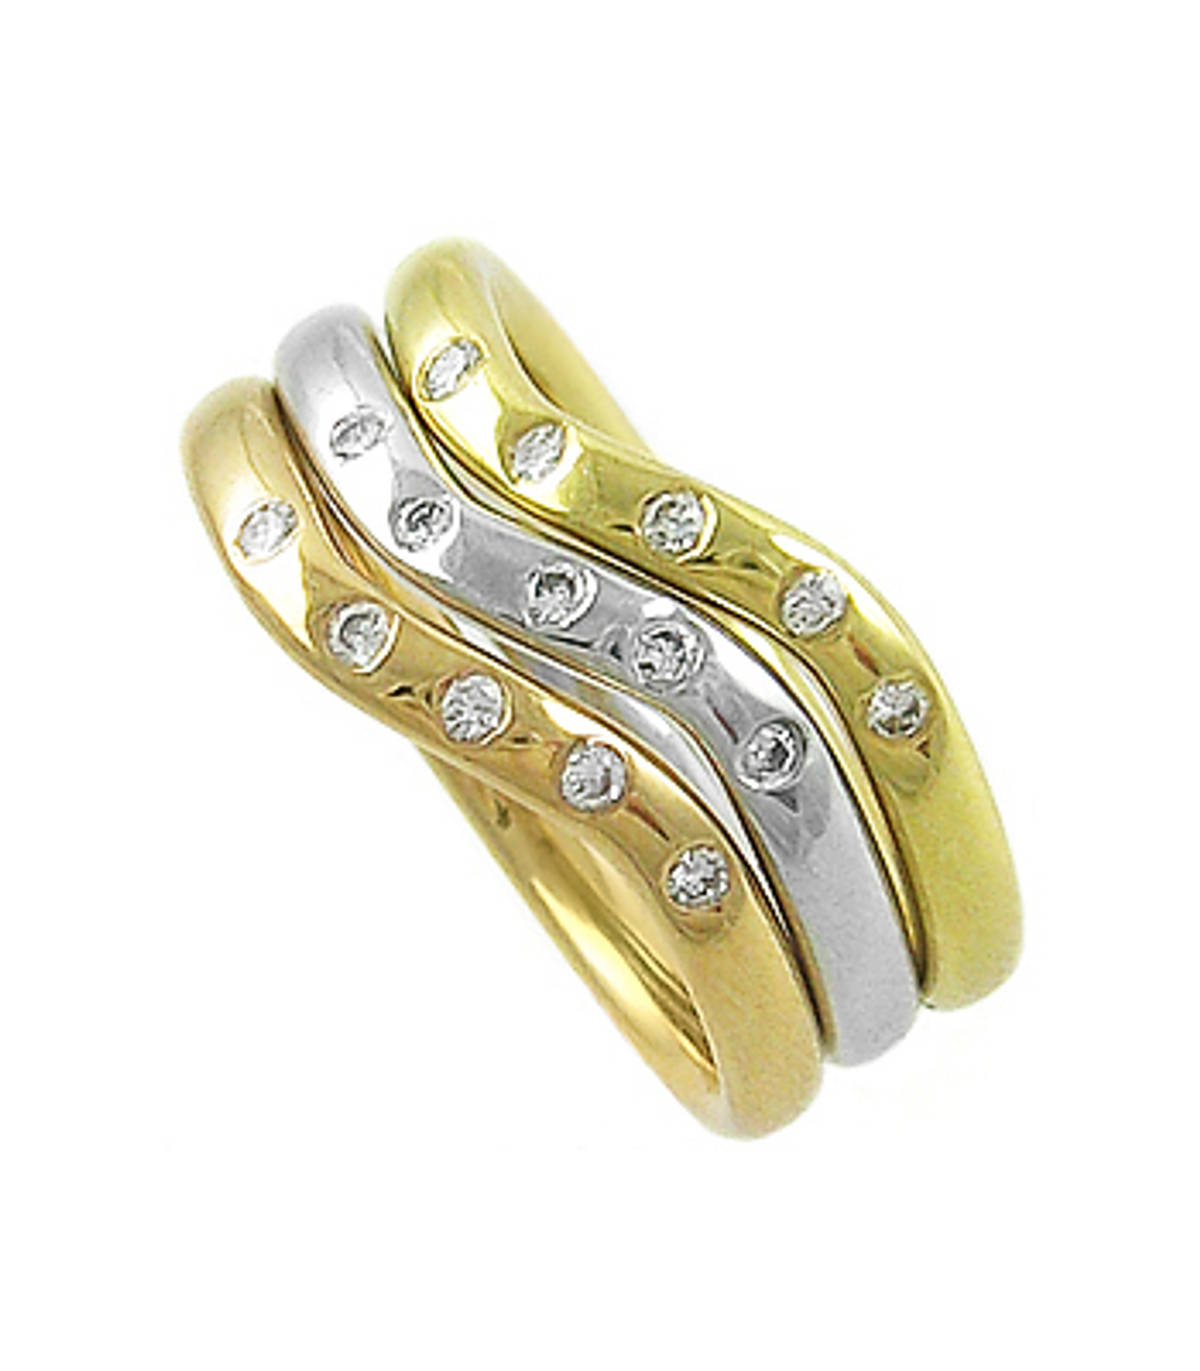 DR7026915 stone diamond 3 band ringPictured item: 0.15ct brilliant cut diamonds set in 18k red/yellow/white gold